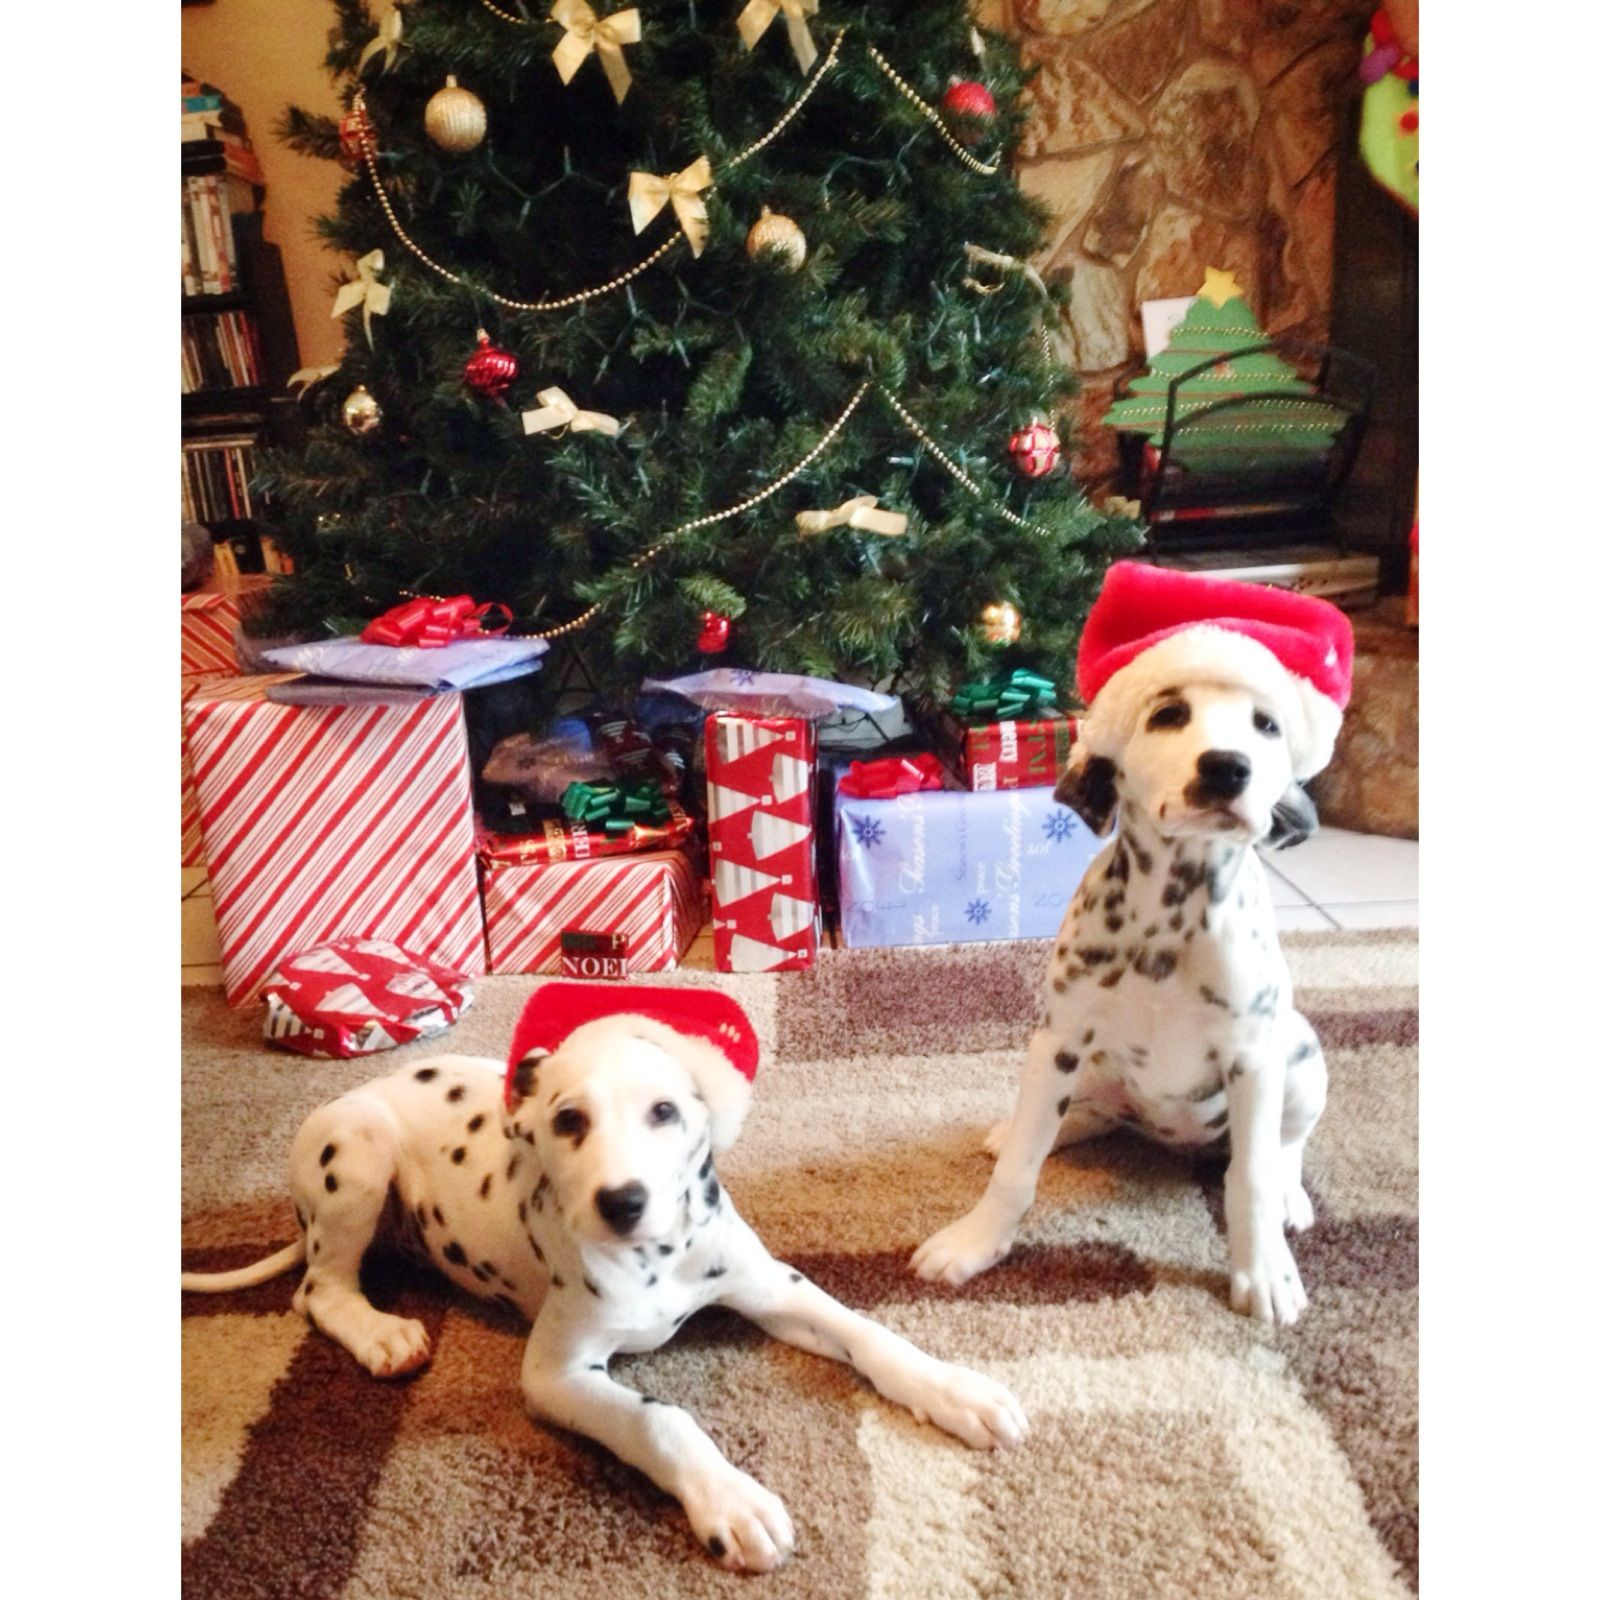 Dalmatian Puppies Names Kloe And Kori They Were Christmas Pup